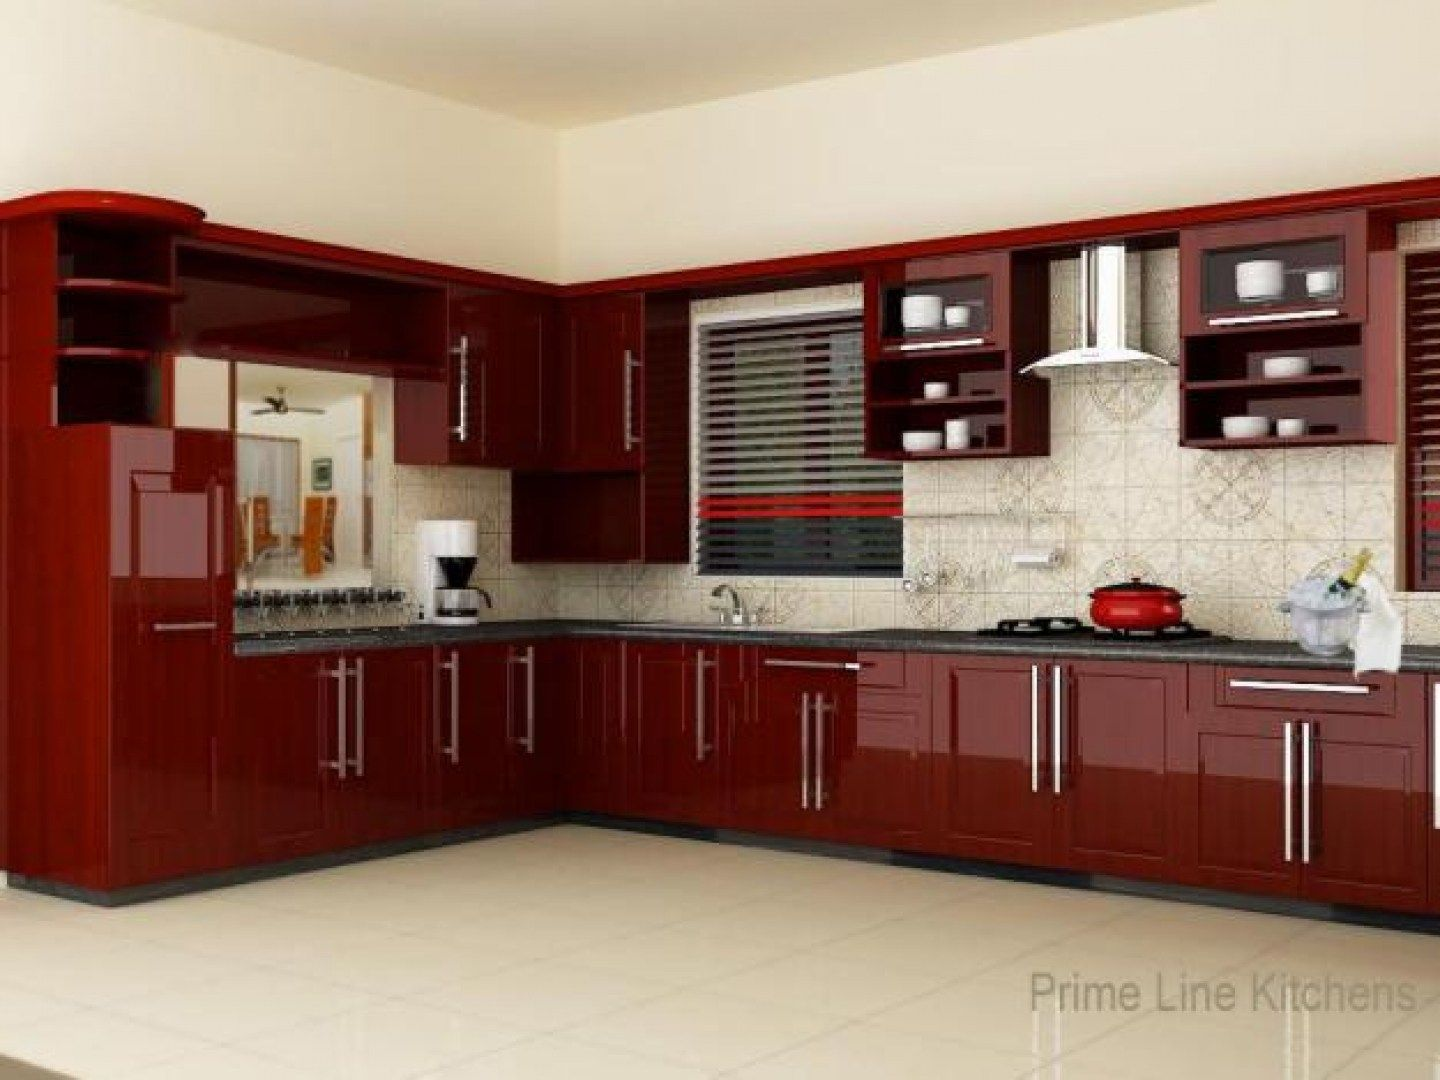 Kitchen Design kitchen design ideas kitchen woodwork designs hyderabad download